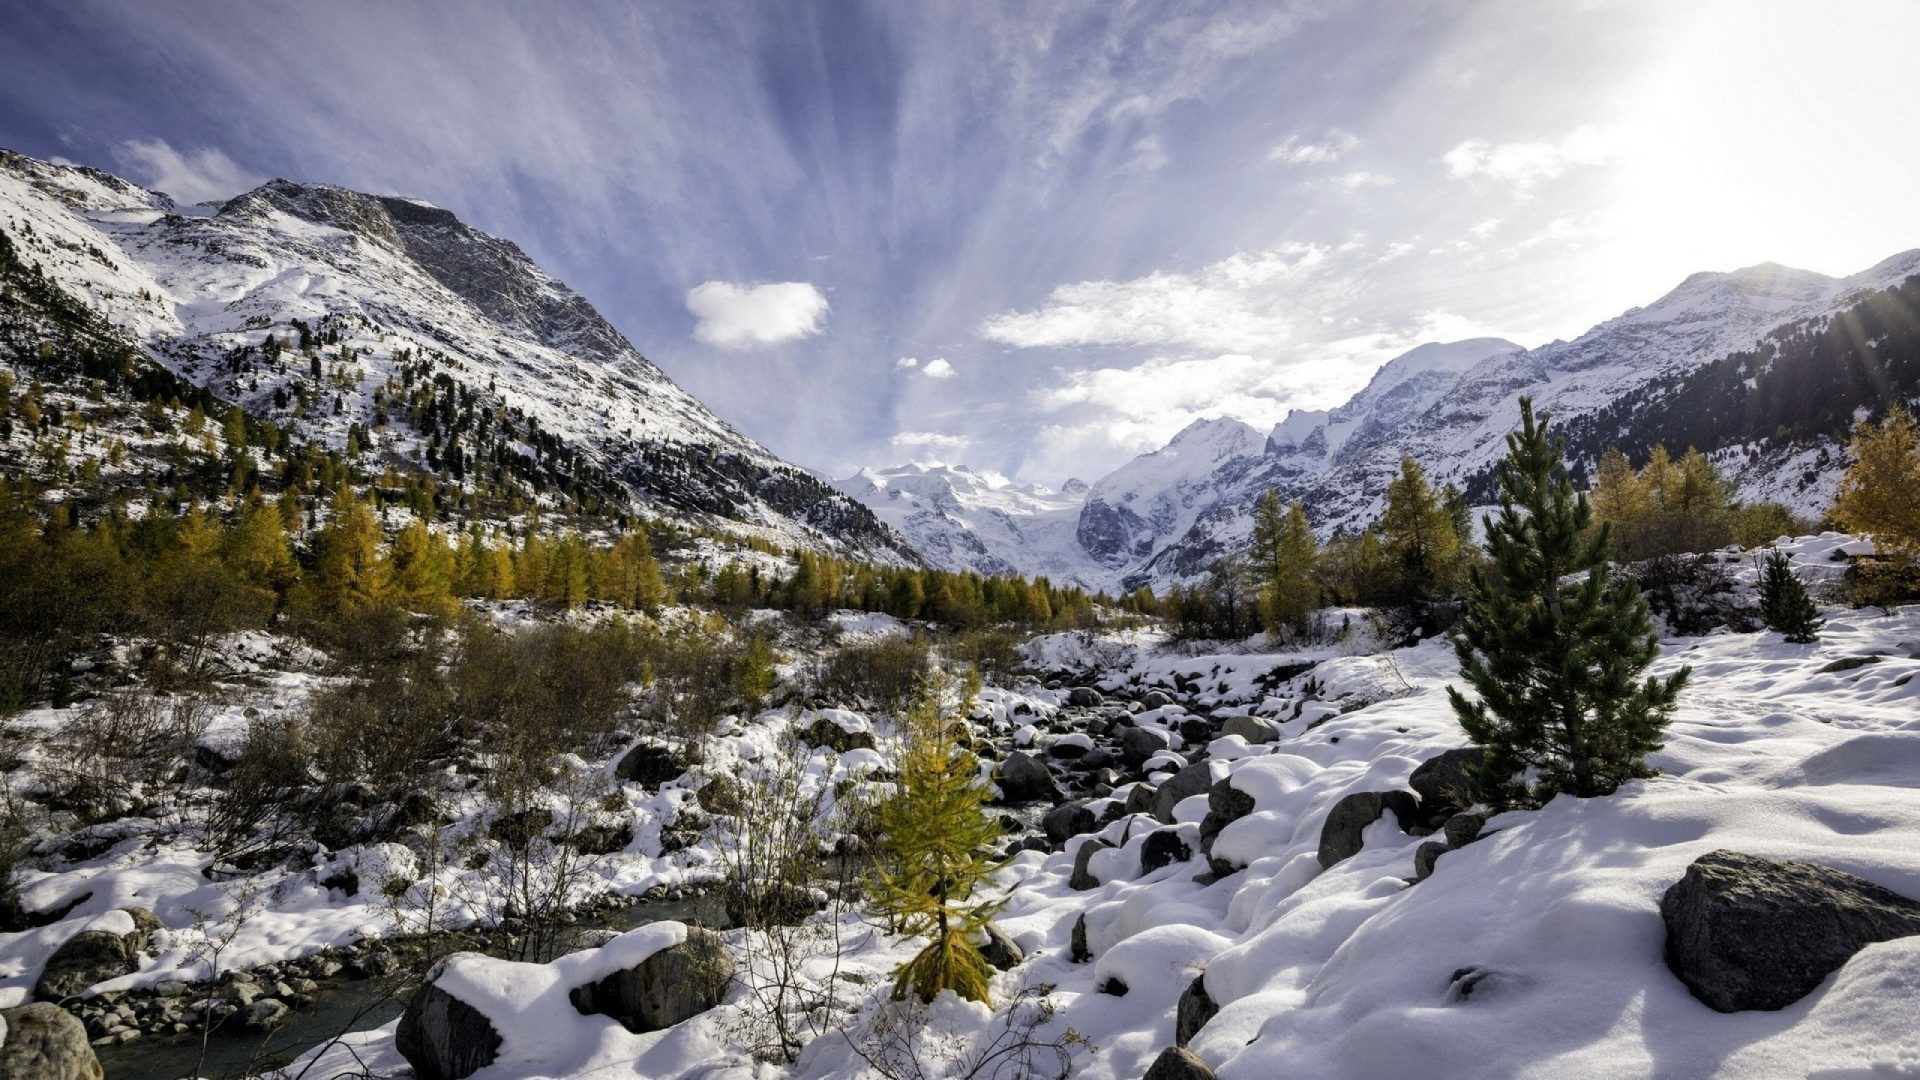 Snow Tag – Stream Rock Snow Winter Nature Mountain Landscape Wallpapers  Collection for HD 16: